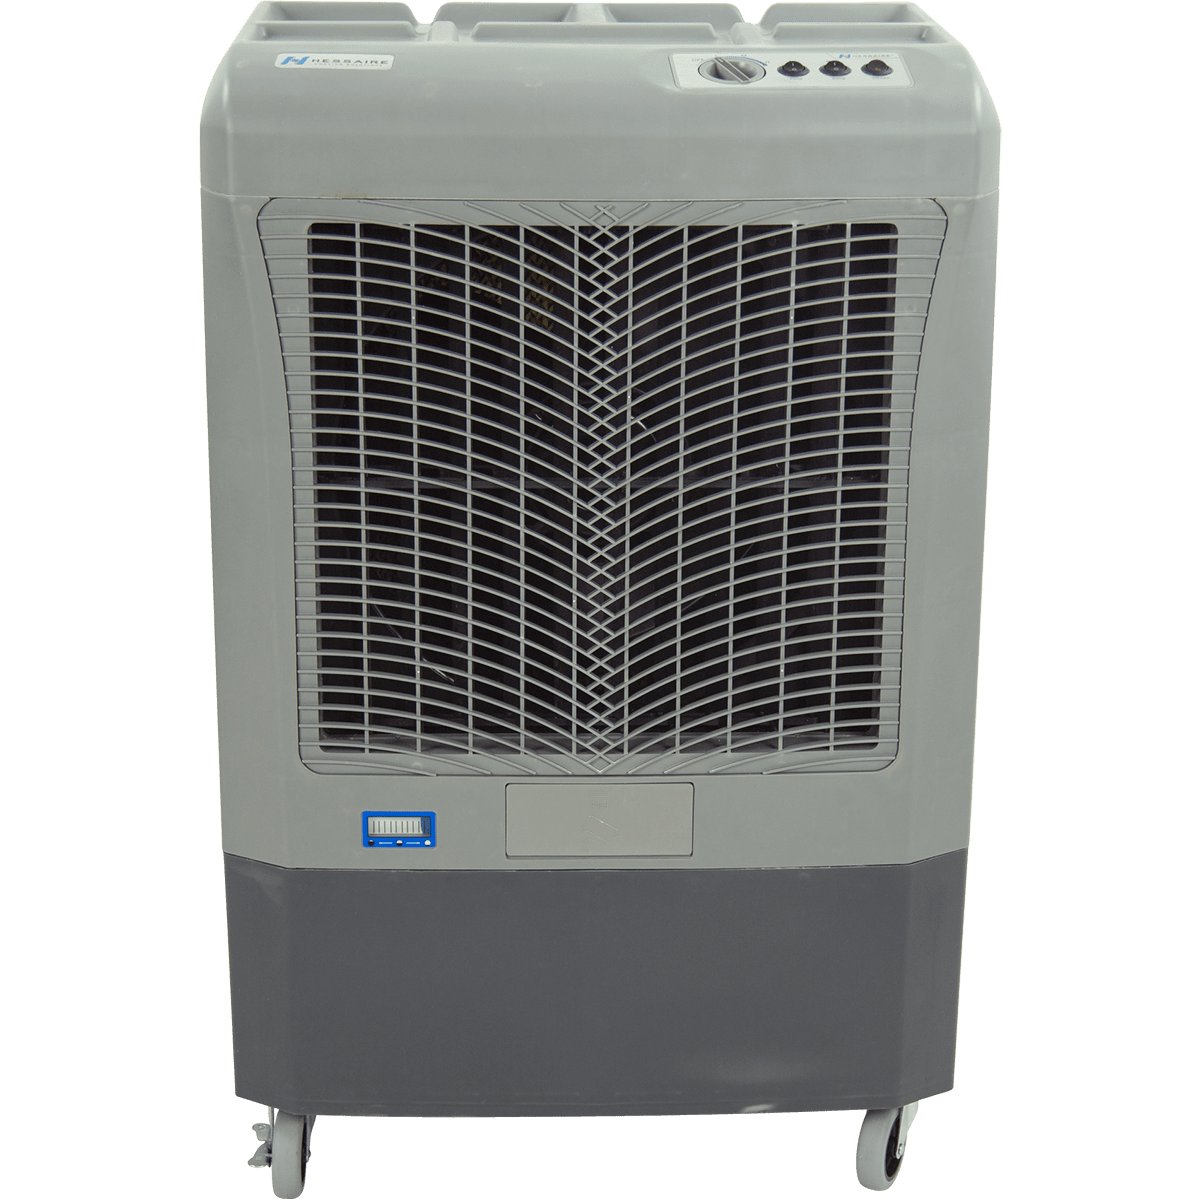 Swamp Cooler Media : Hessaire mc m evaporative cooler sylvane